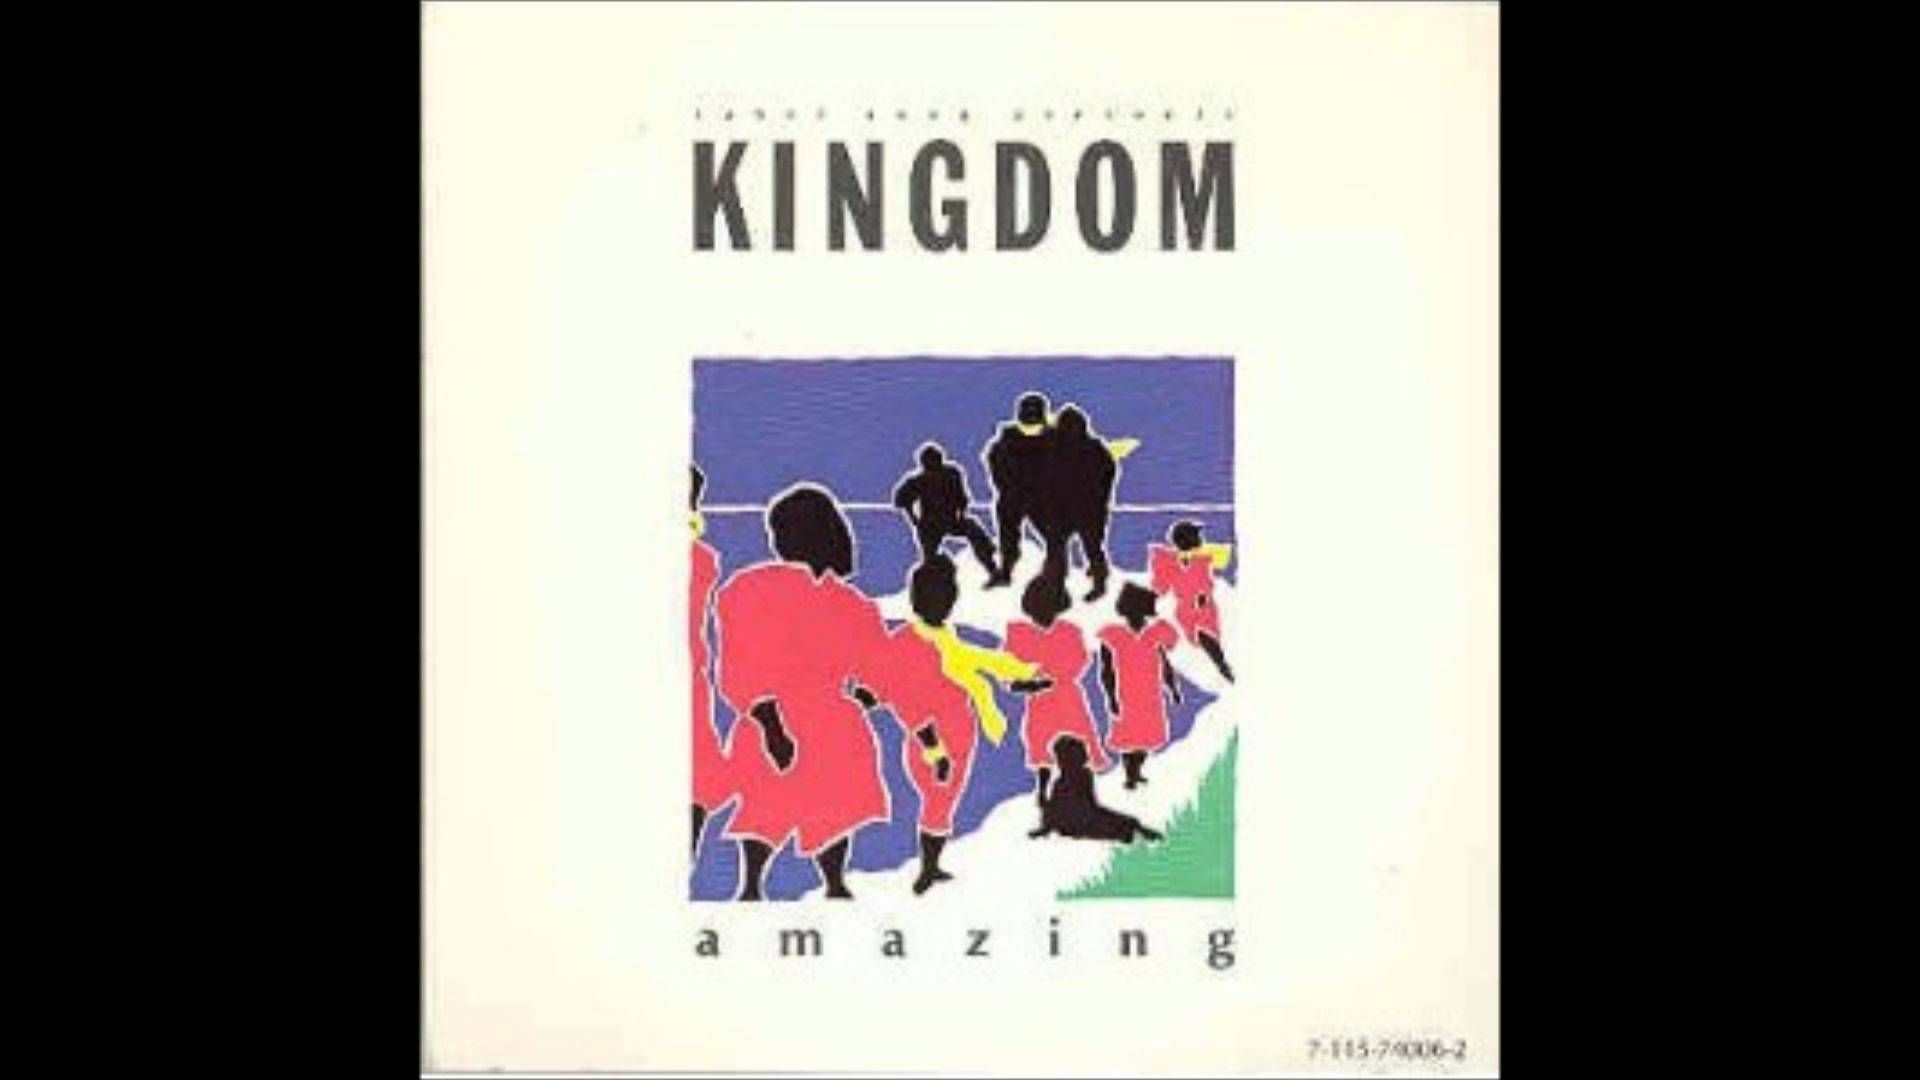 Kingdom fully committed praise songs inspirational